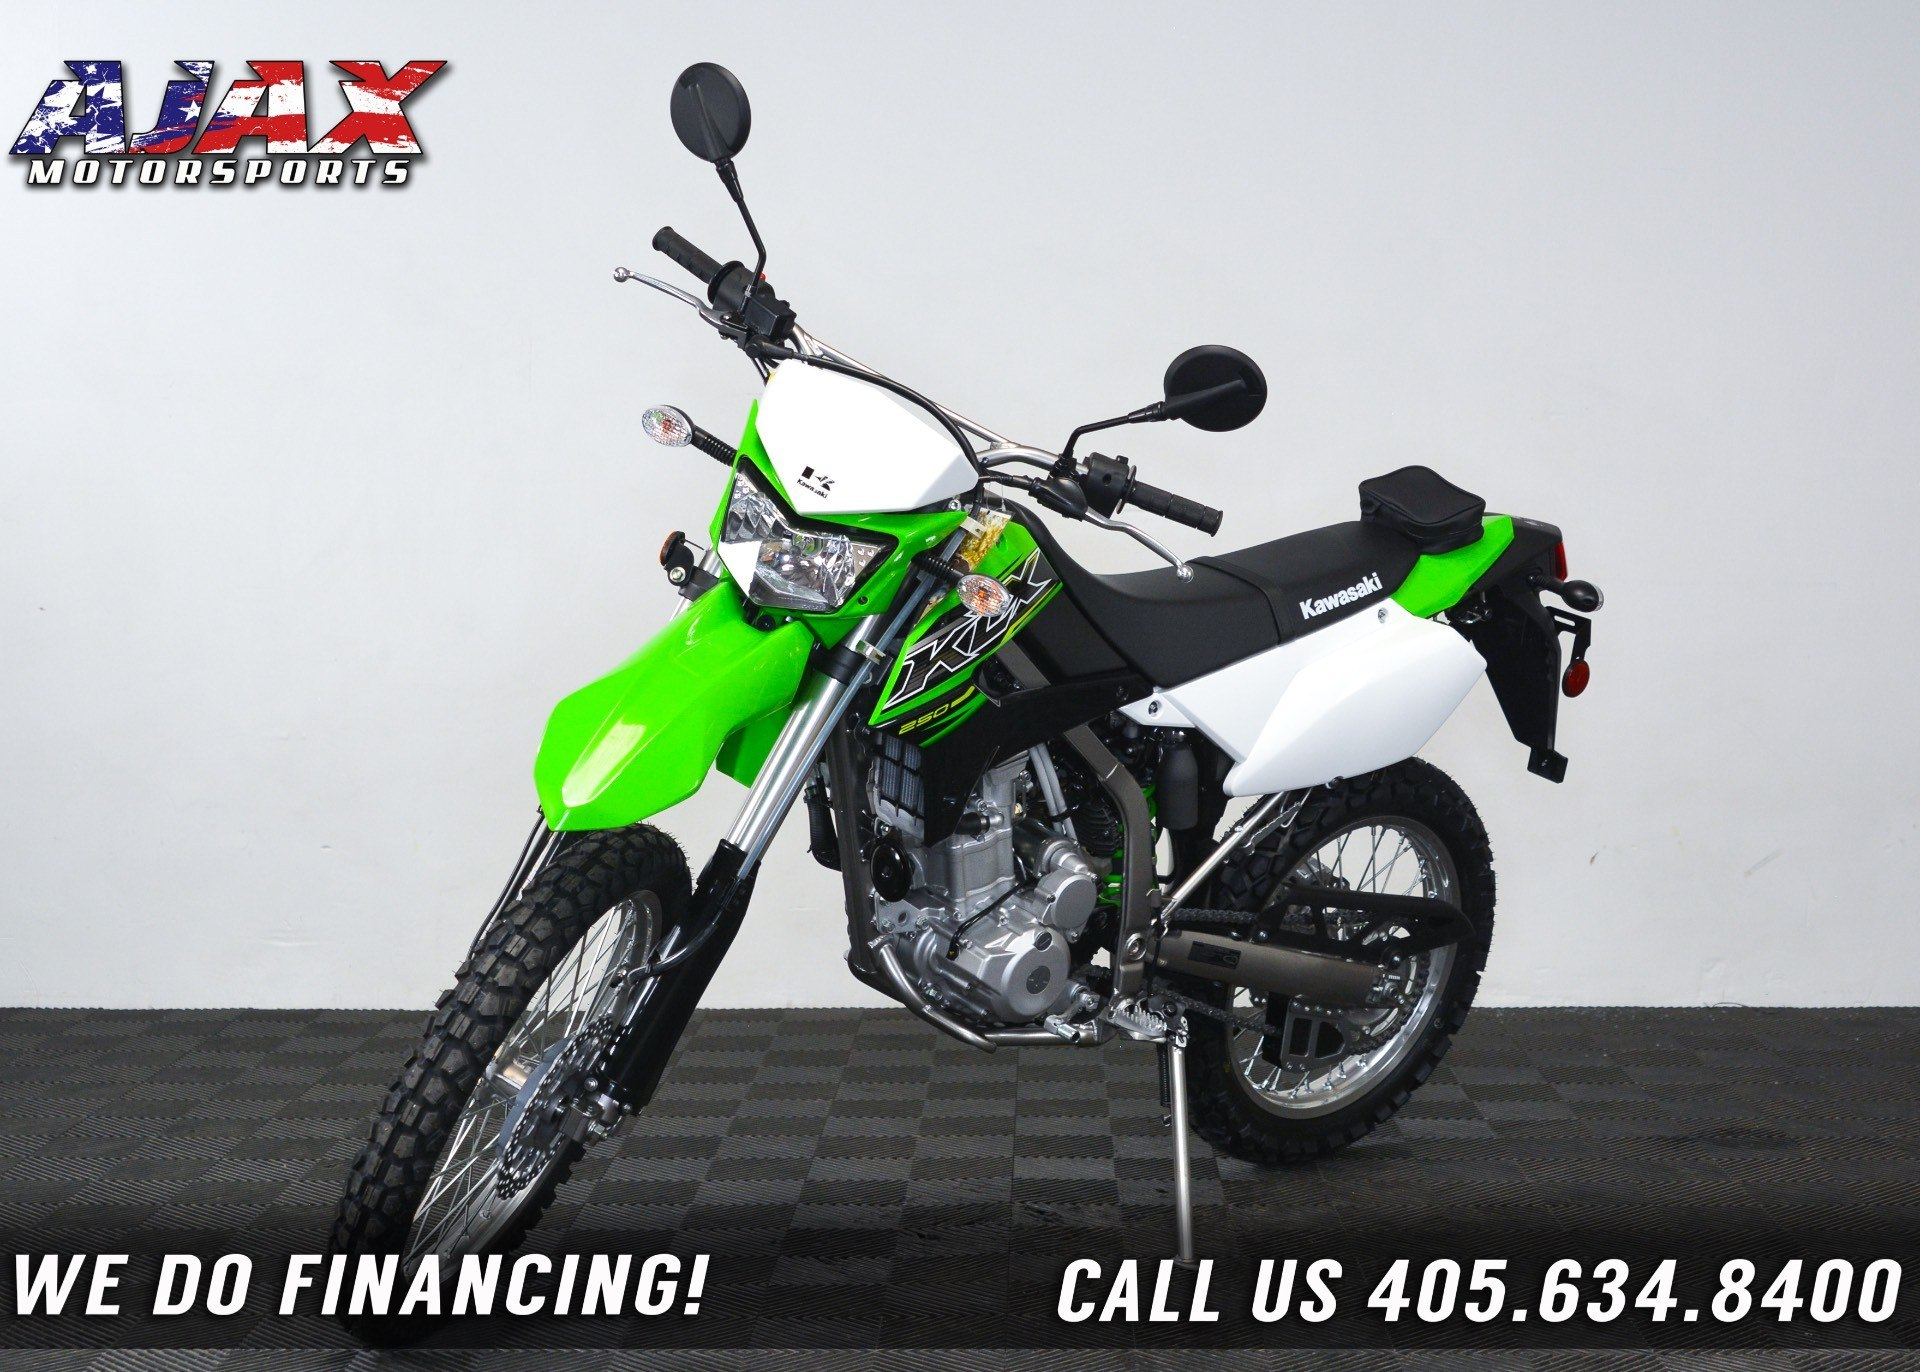 2019 Kawasaki KLX 250 in Oklahoma City, Oklahoma - Photo 7